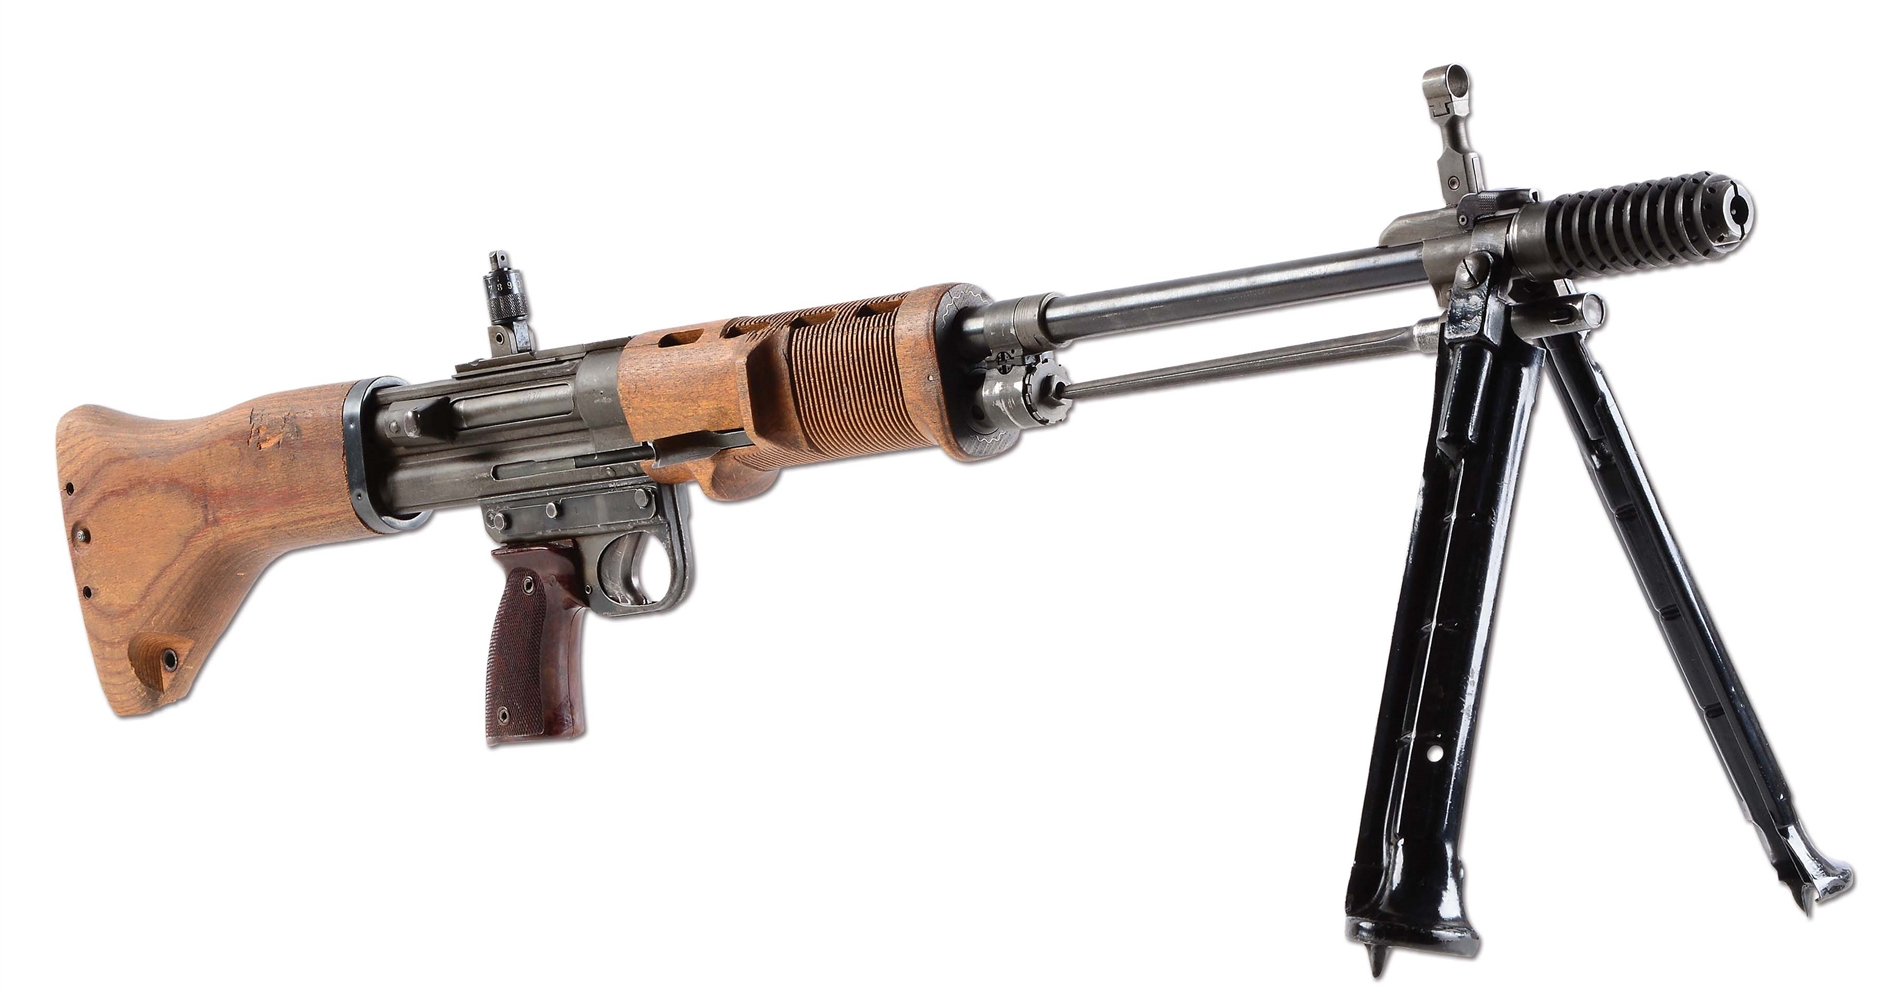 (N) ABSOLUTELY FABULOUS INCREDIBLY SOUGHT AFTER GERMAN FG-42 2ND MODEL MACHINE GUN (FULLY TRANSFERABLE).